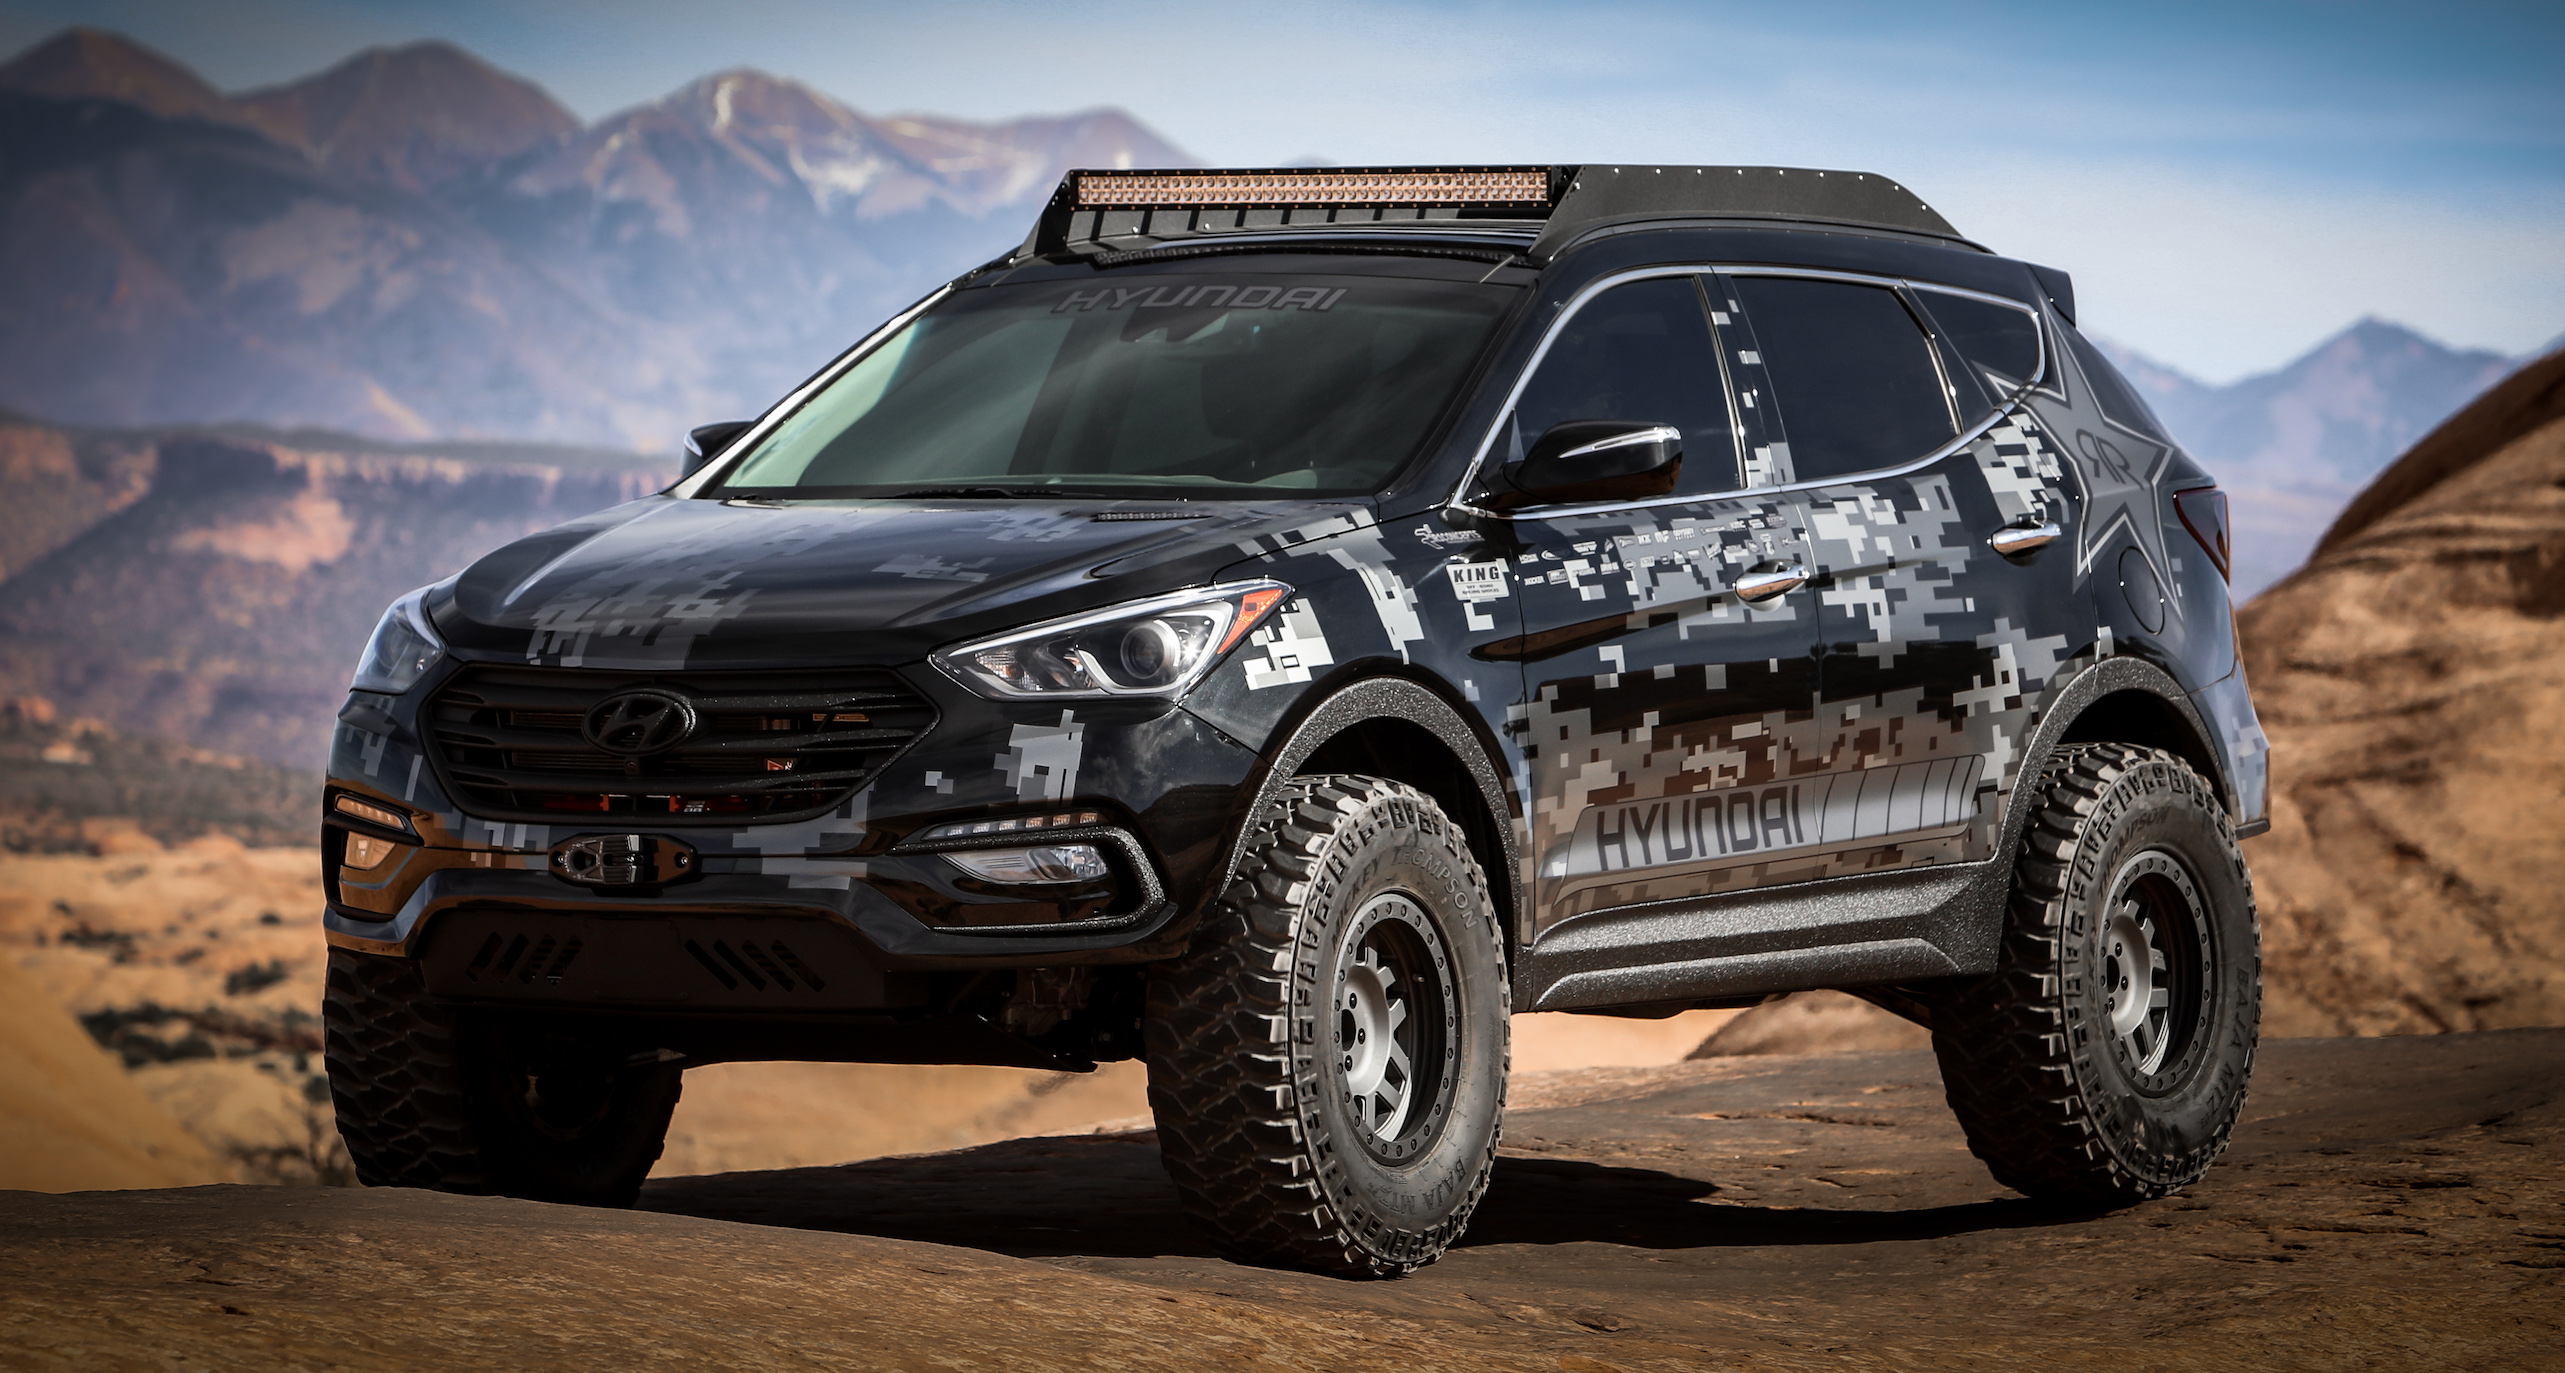 Leveraging The Outstanding Santa Fe Sport Platform And Train We Definitely Pushed Its Capabilities To New Limits Conquer Pinnacle Of